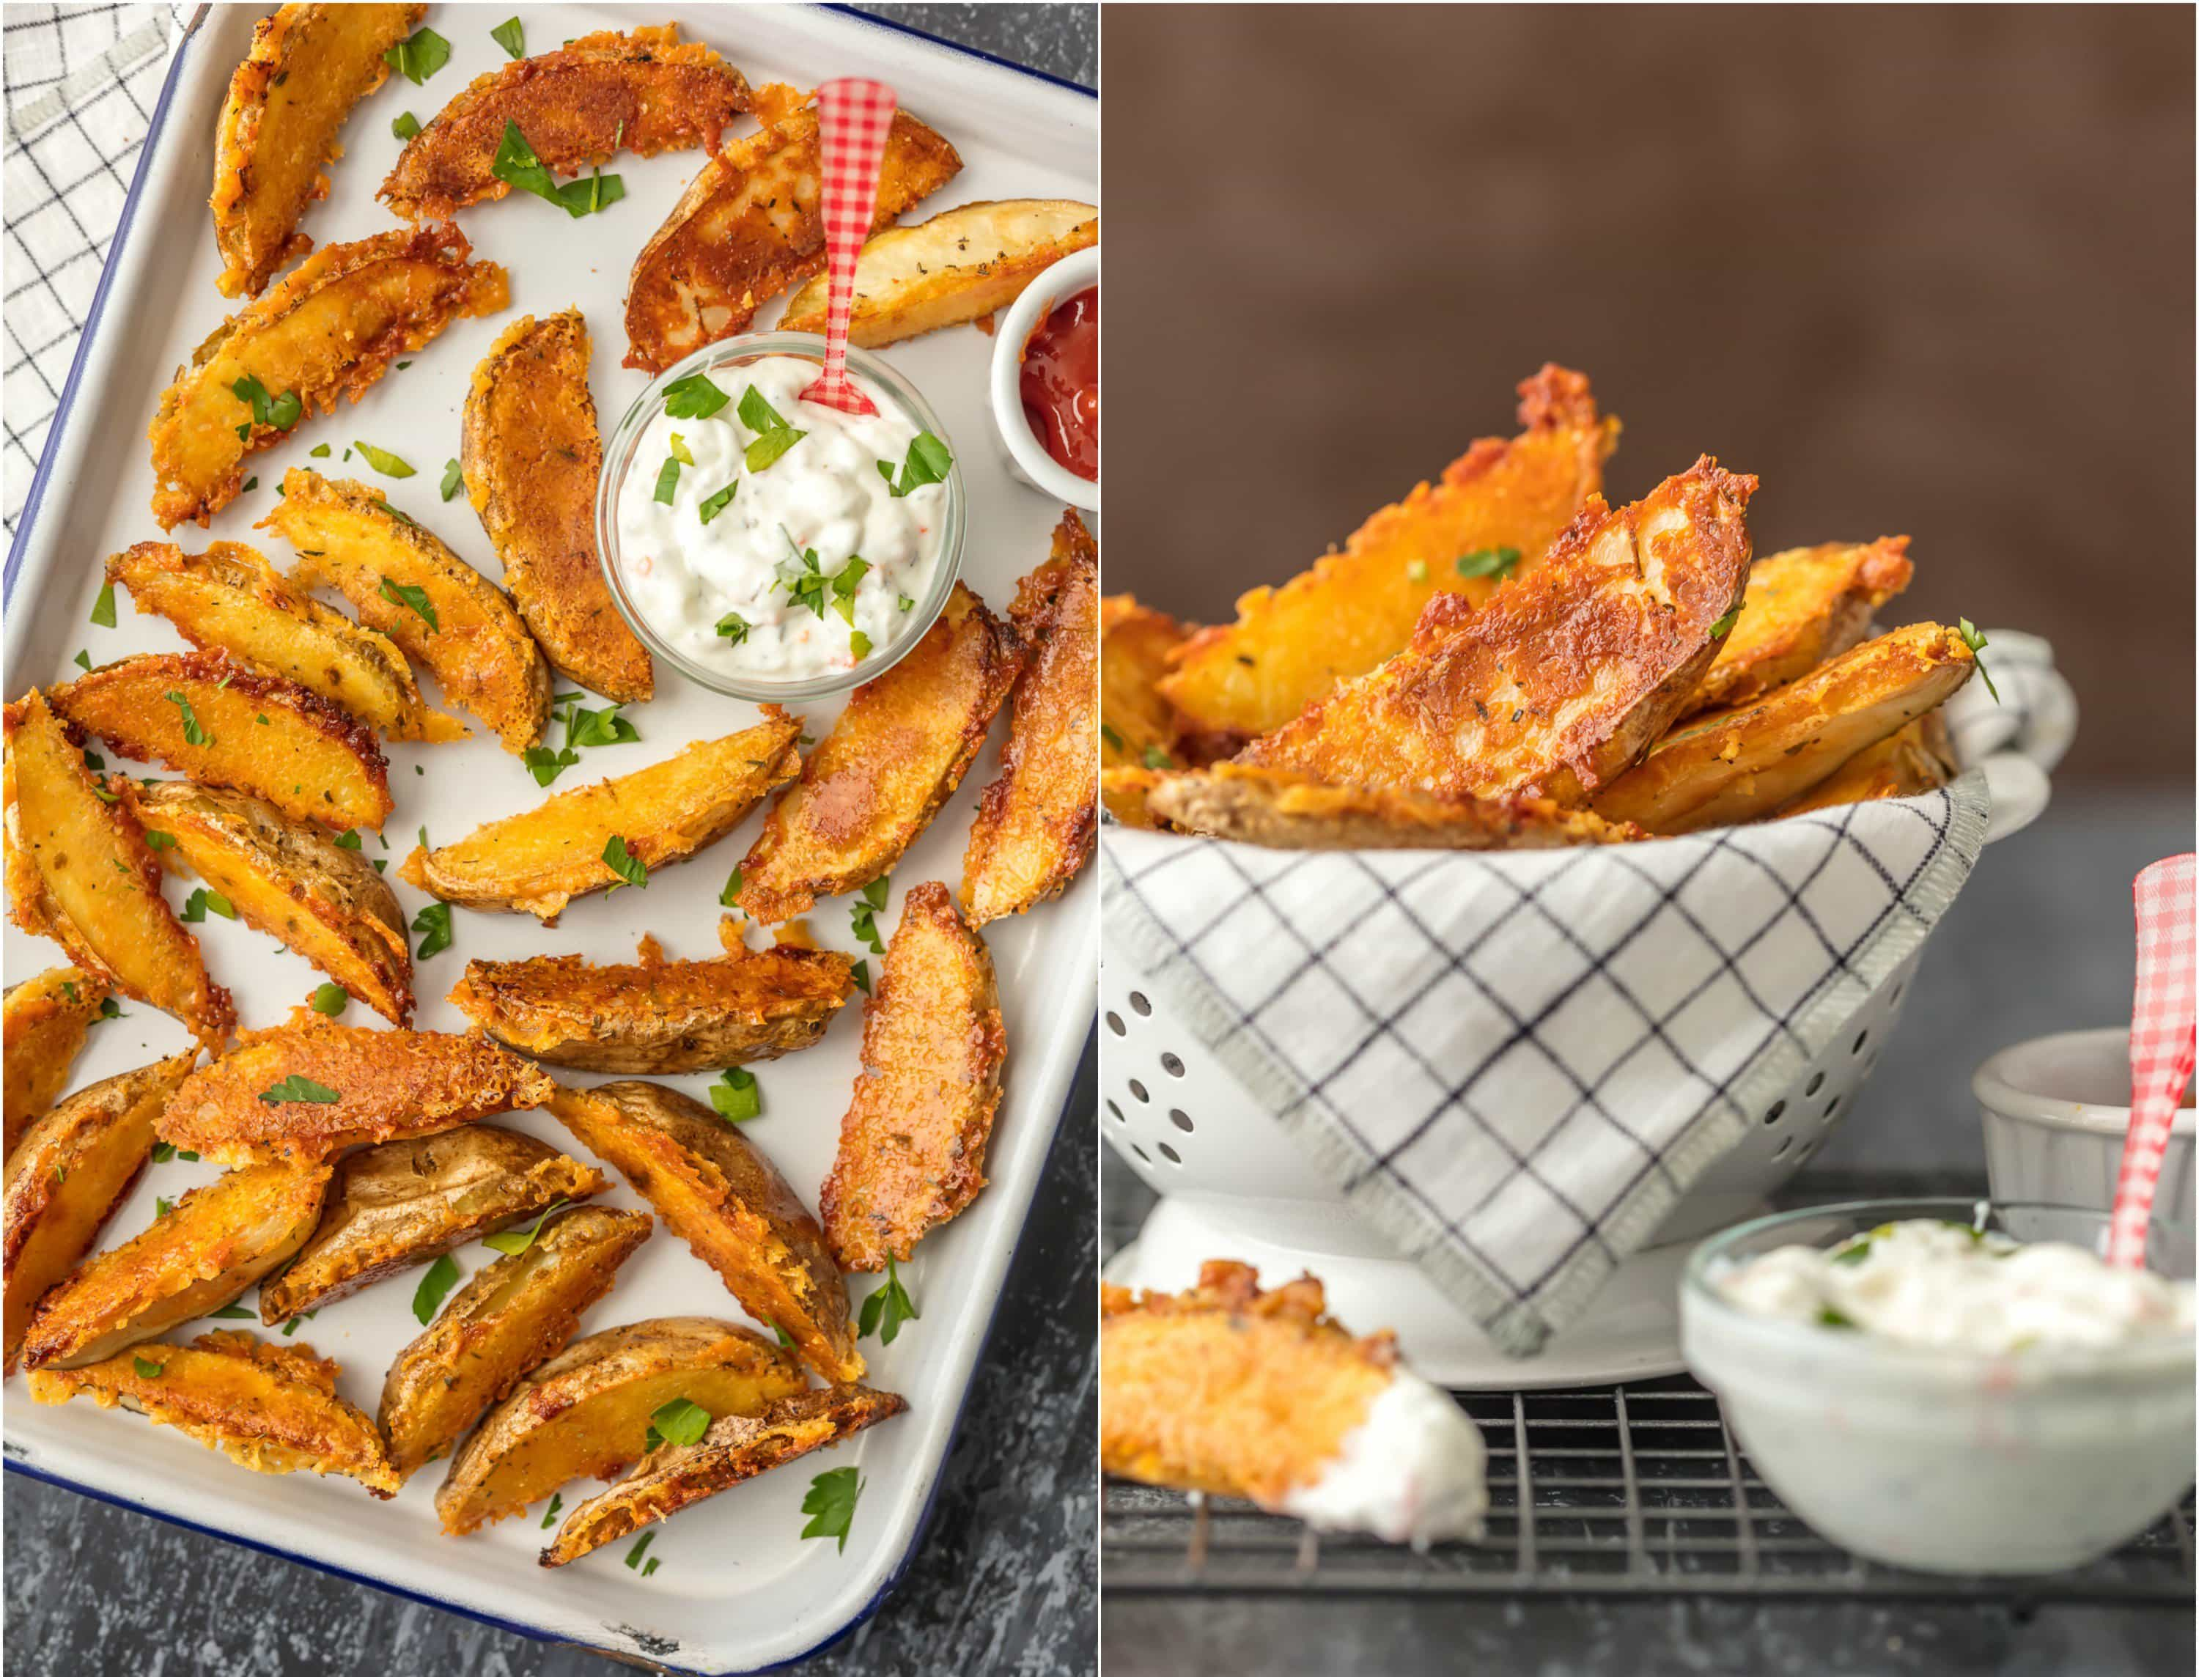 These CRISPY PARMESAN POTATO WEDGES are so absolutely delicious and EASY! You'll never go back to regular fries after you try these thick baked potato wedges coated in a crispy cheese shell. Just too good!